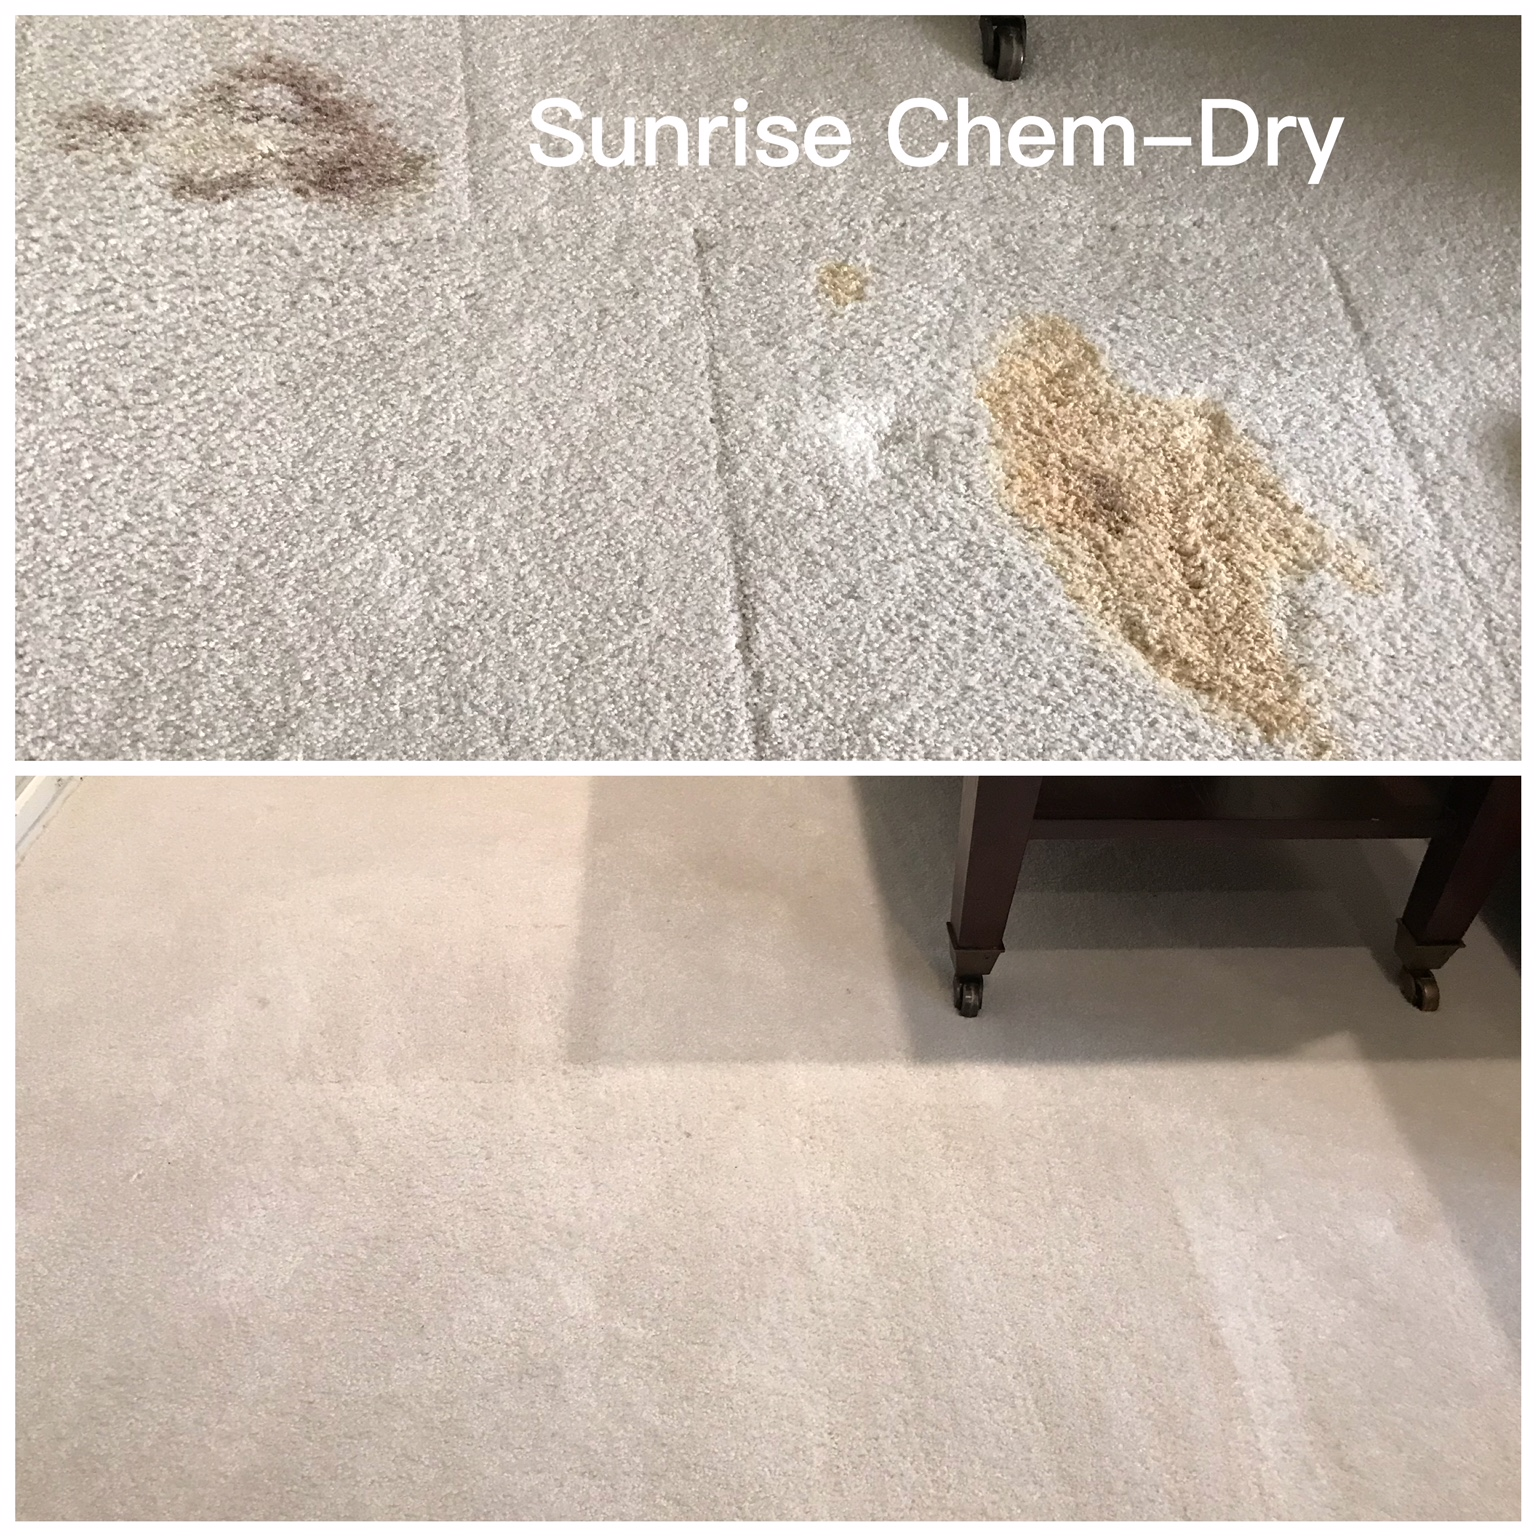 Sunrise-Chem Dry how to remove blood from your Carpet Repatching